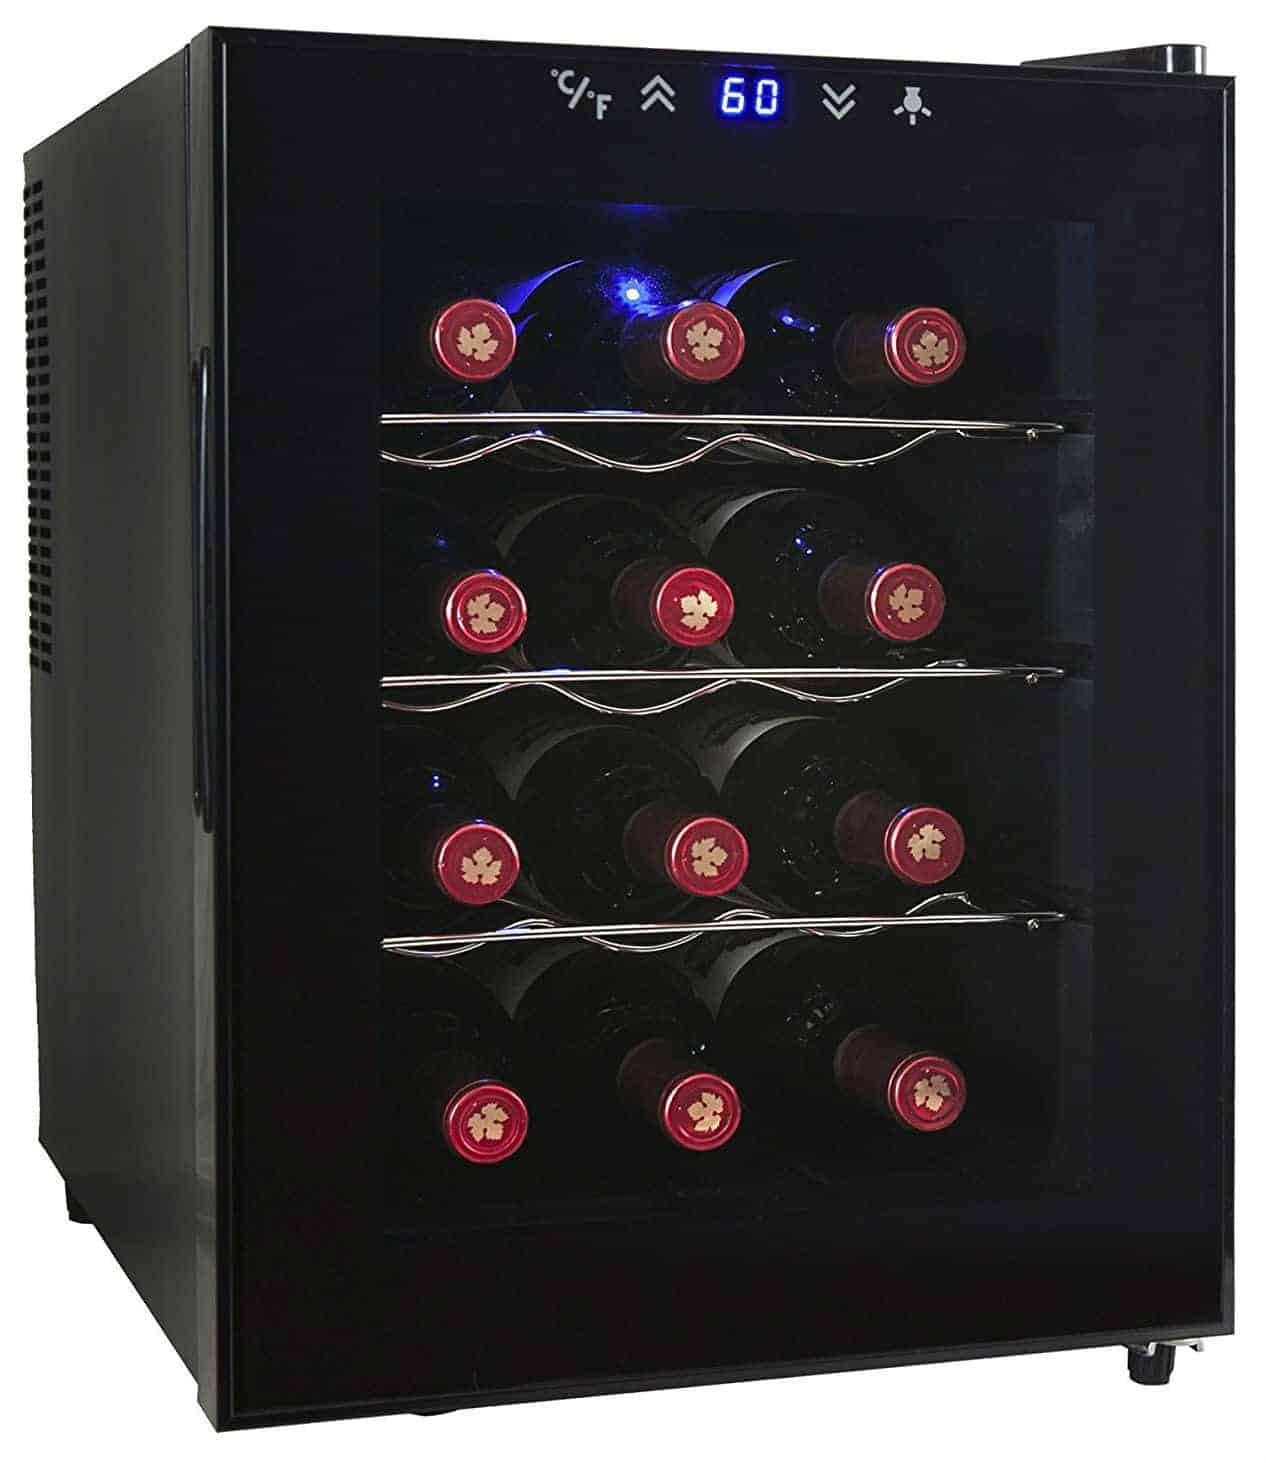 AKDY 12 Bottle Single Zone Thermoelectric Stainless Steel Freestanding Wine Cooler Cellar